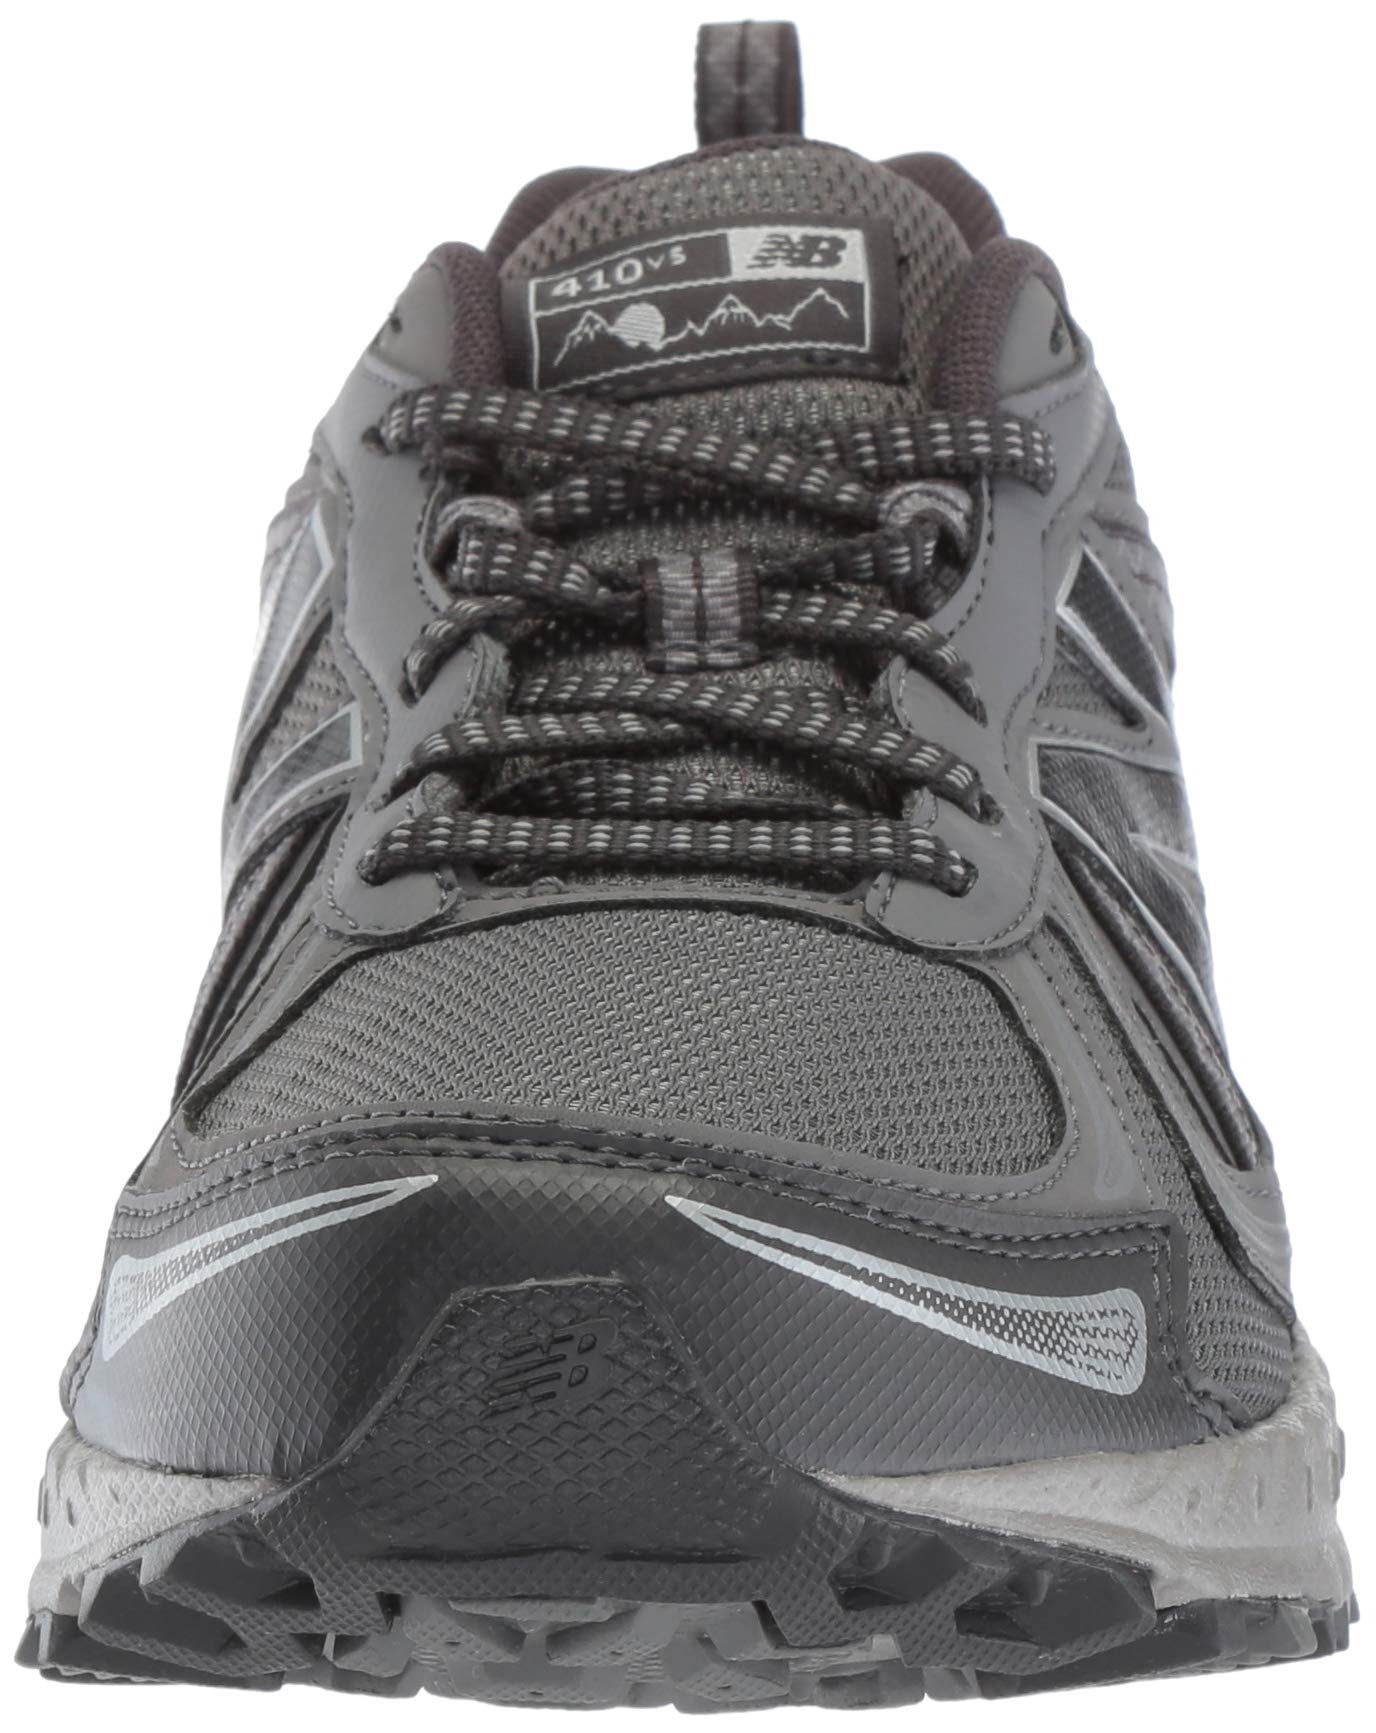 New Balance Men's 410v5 Cushioning Trail Running Shoe, Castlerock/Phantom, 12 D US by New Balance (Image #4)